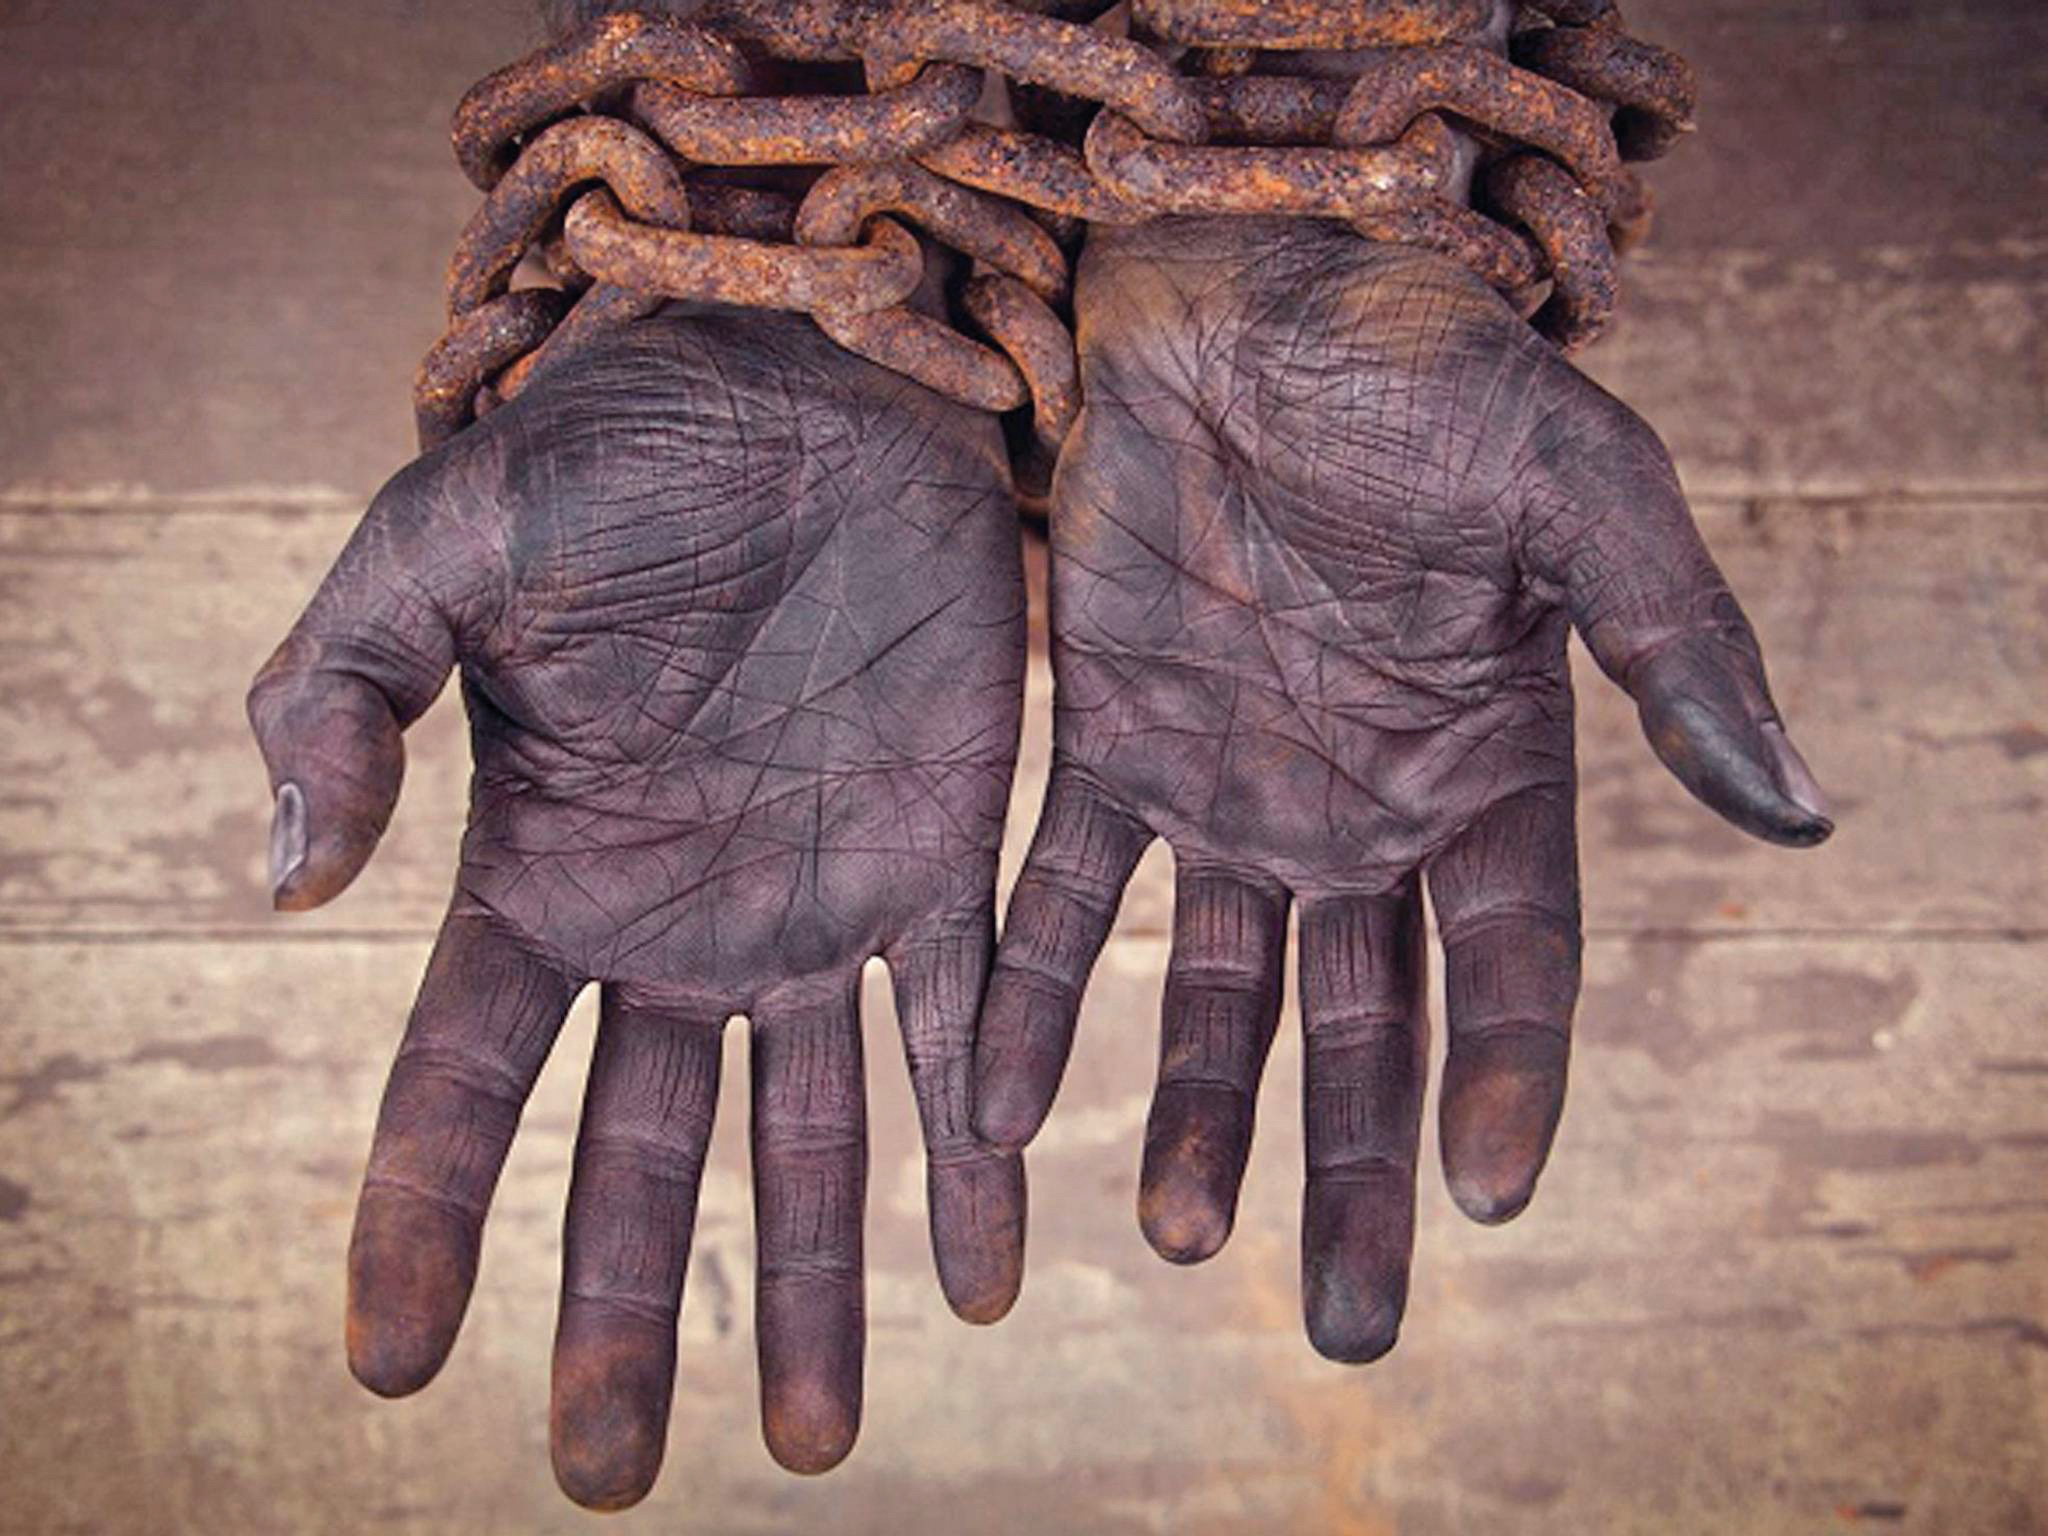 Each year, on Aug. 23, the United Nations hosts an International Day for the Remembrance of the Slave Trade and its Abolition to remind the world of the tragedy of the transatlantic slave trade. (Photo: UNESCO)